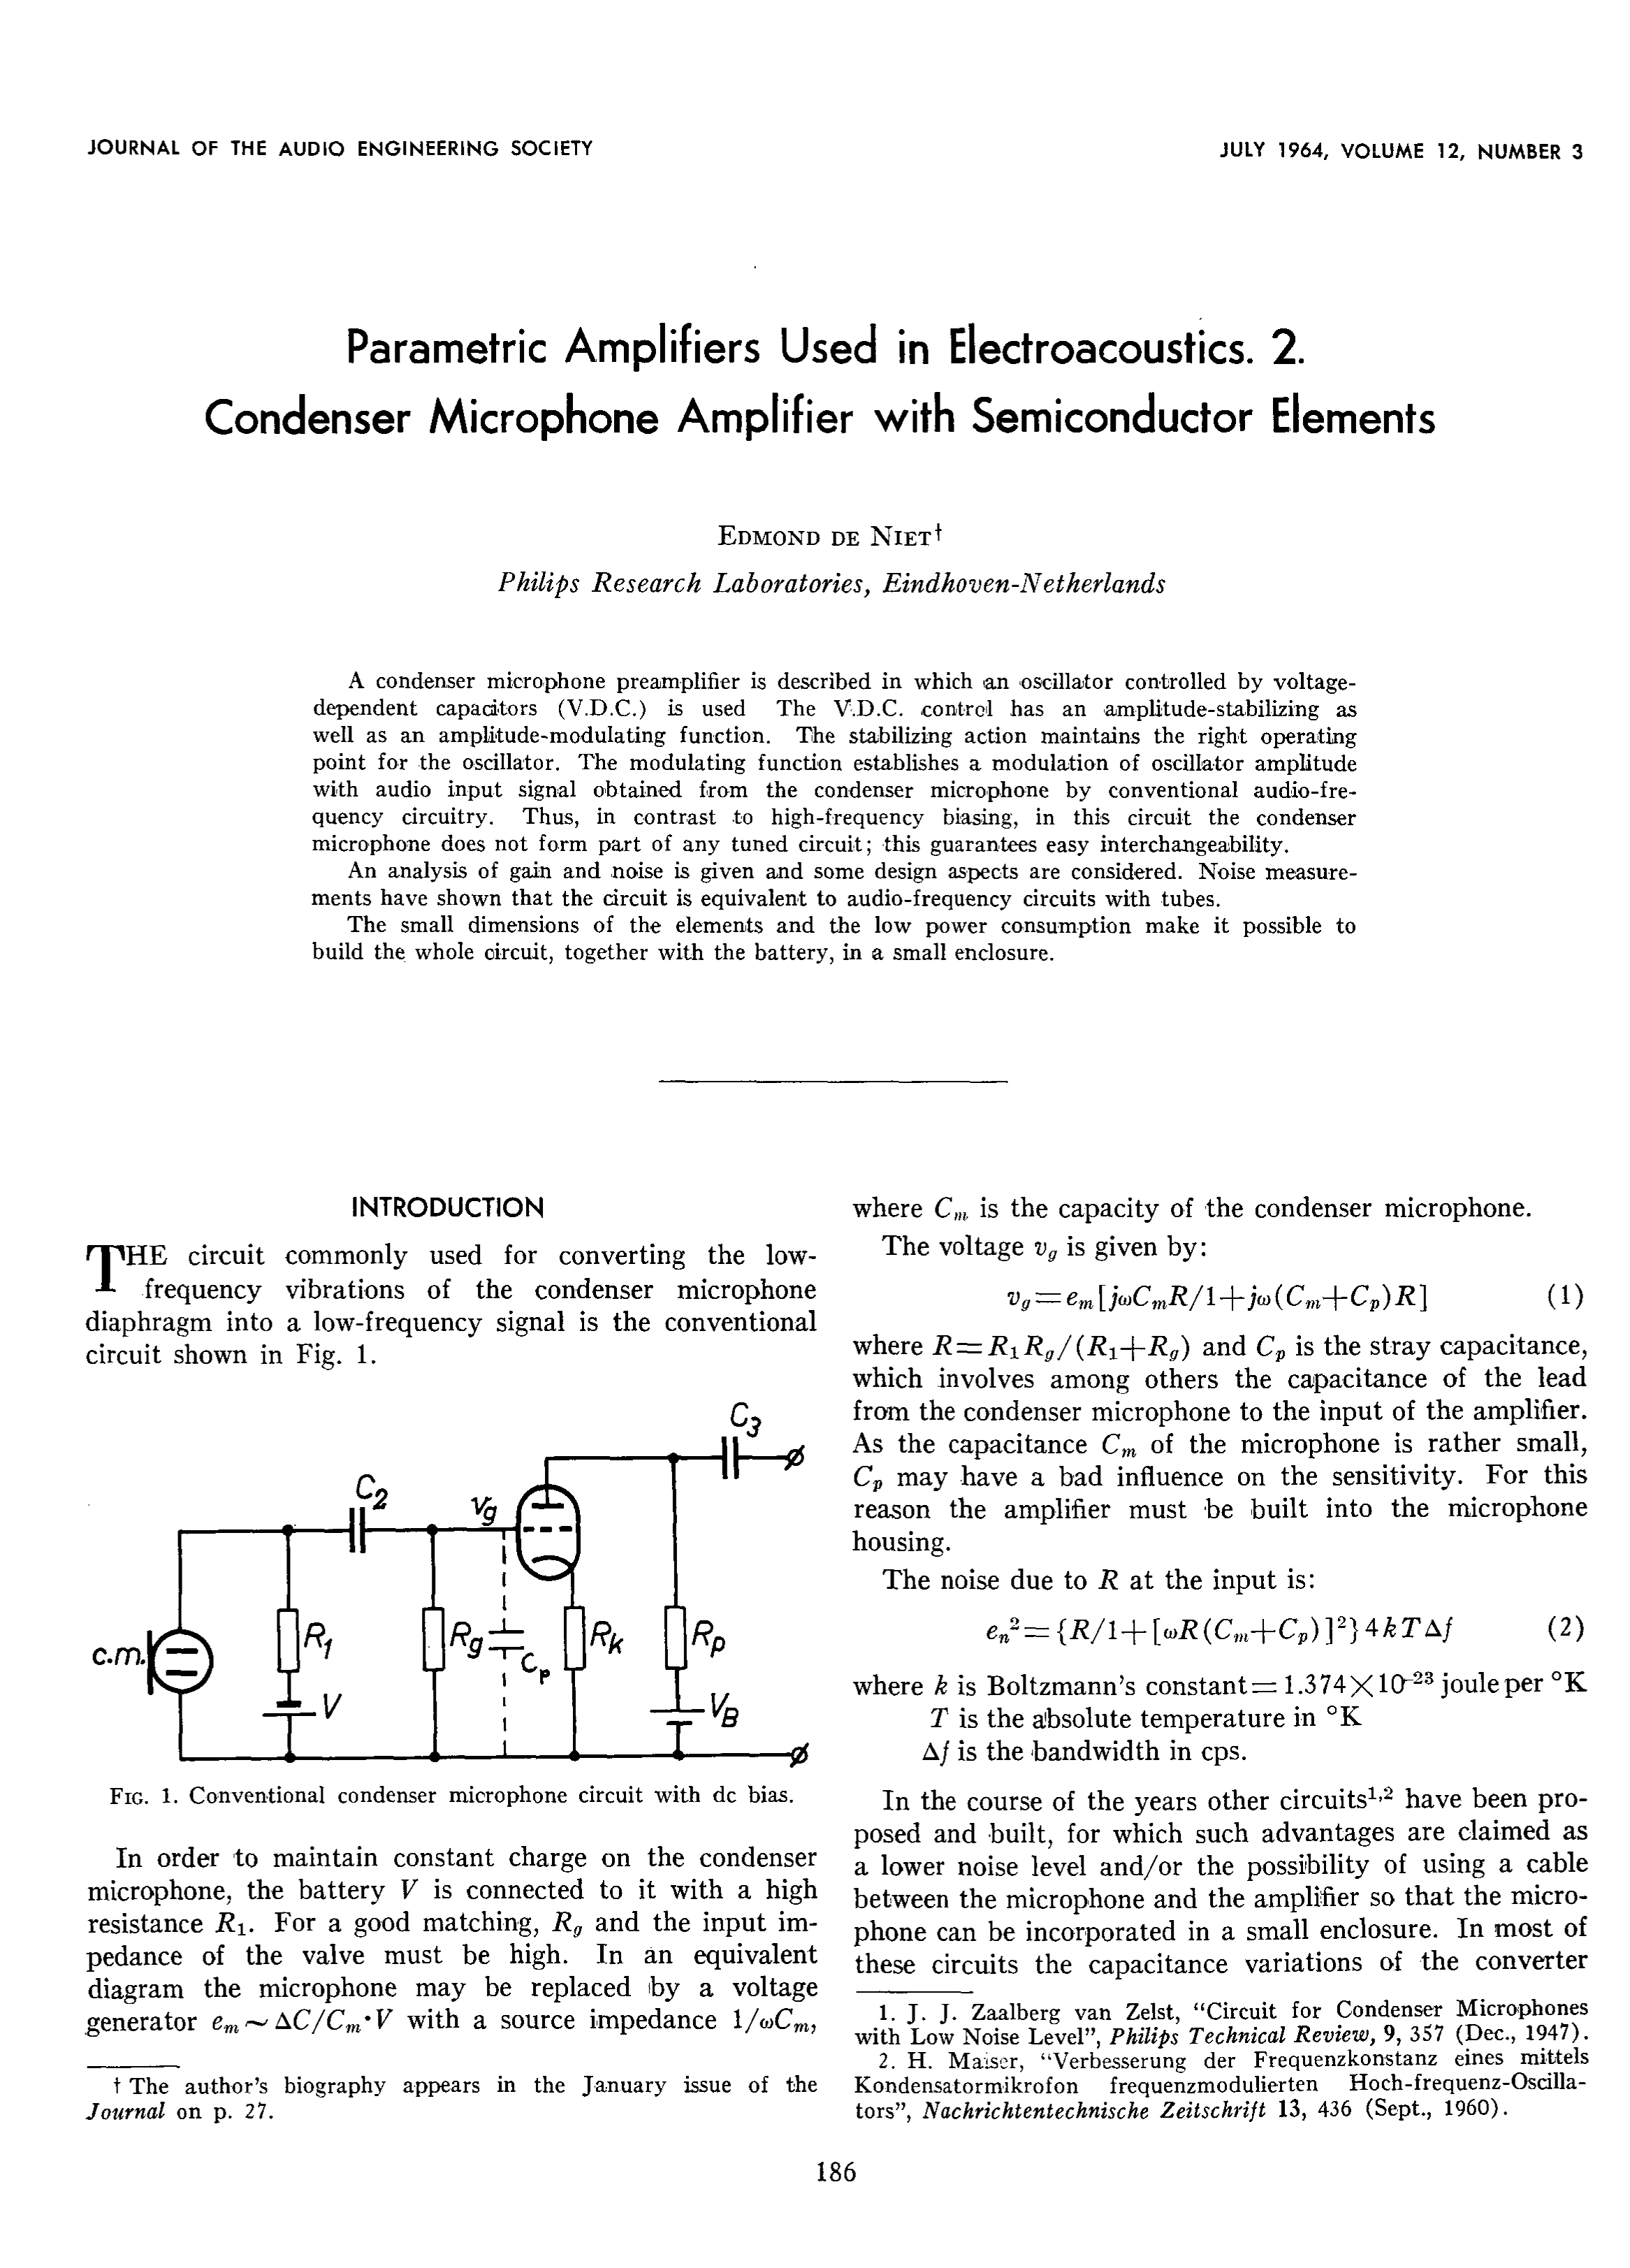 Aes E Library Parametric Amplifiers Used In Electroacoustics Part Constant Volume Fet Amplifier Circuit Making Easy Circuits 2 The Condenser Microphone With Semiconductor Elements